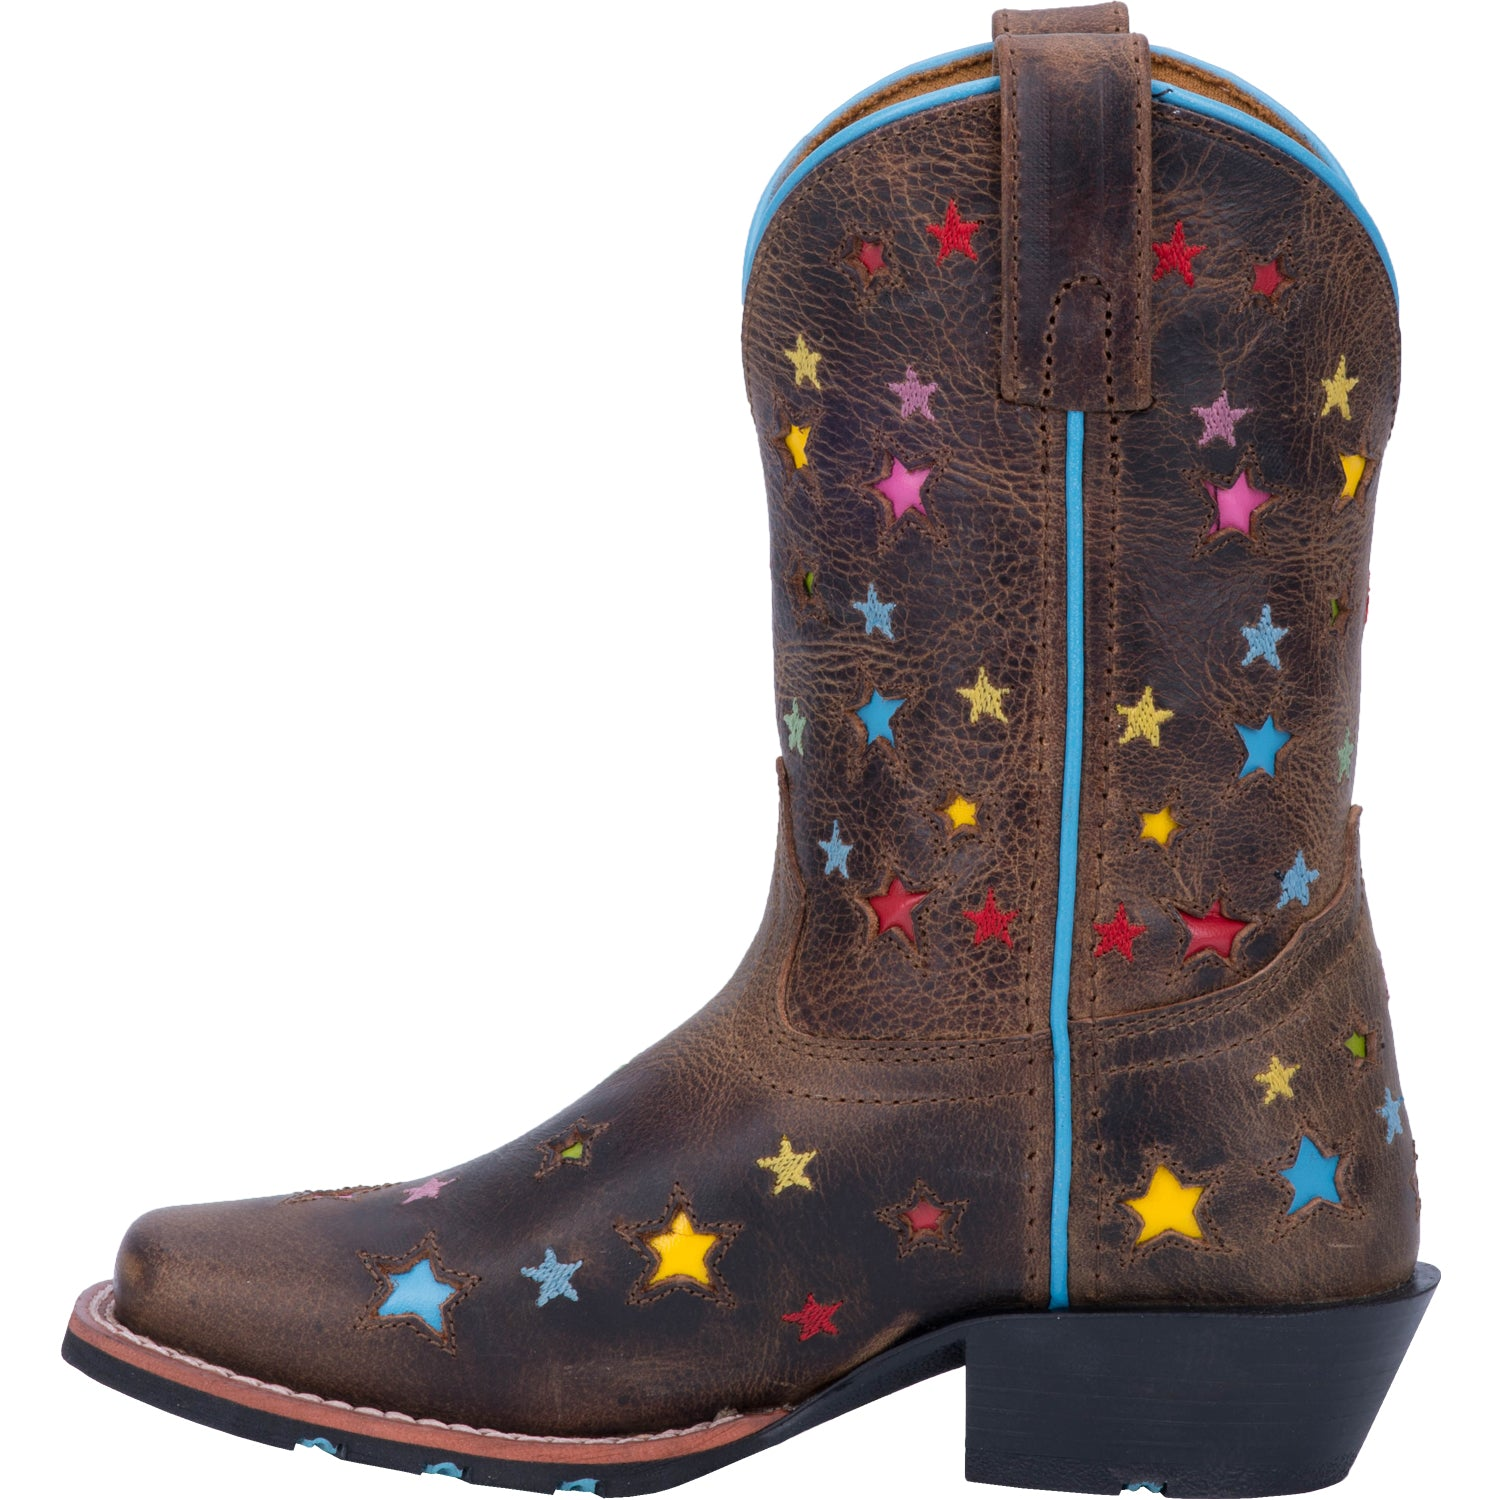 STARLETT LEATHER YOUTH BOOT 4197207834666